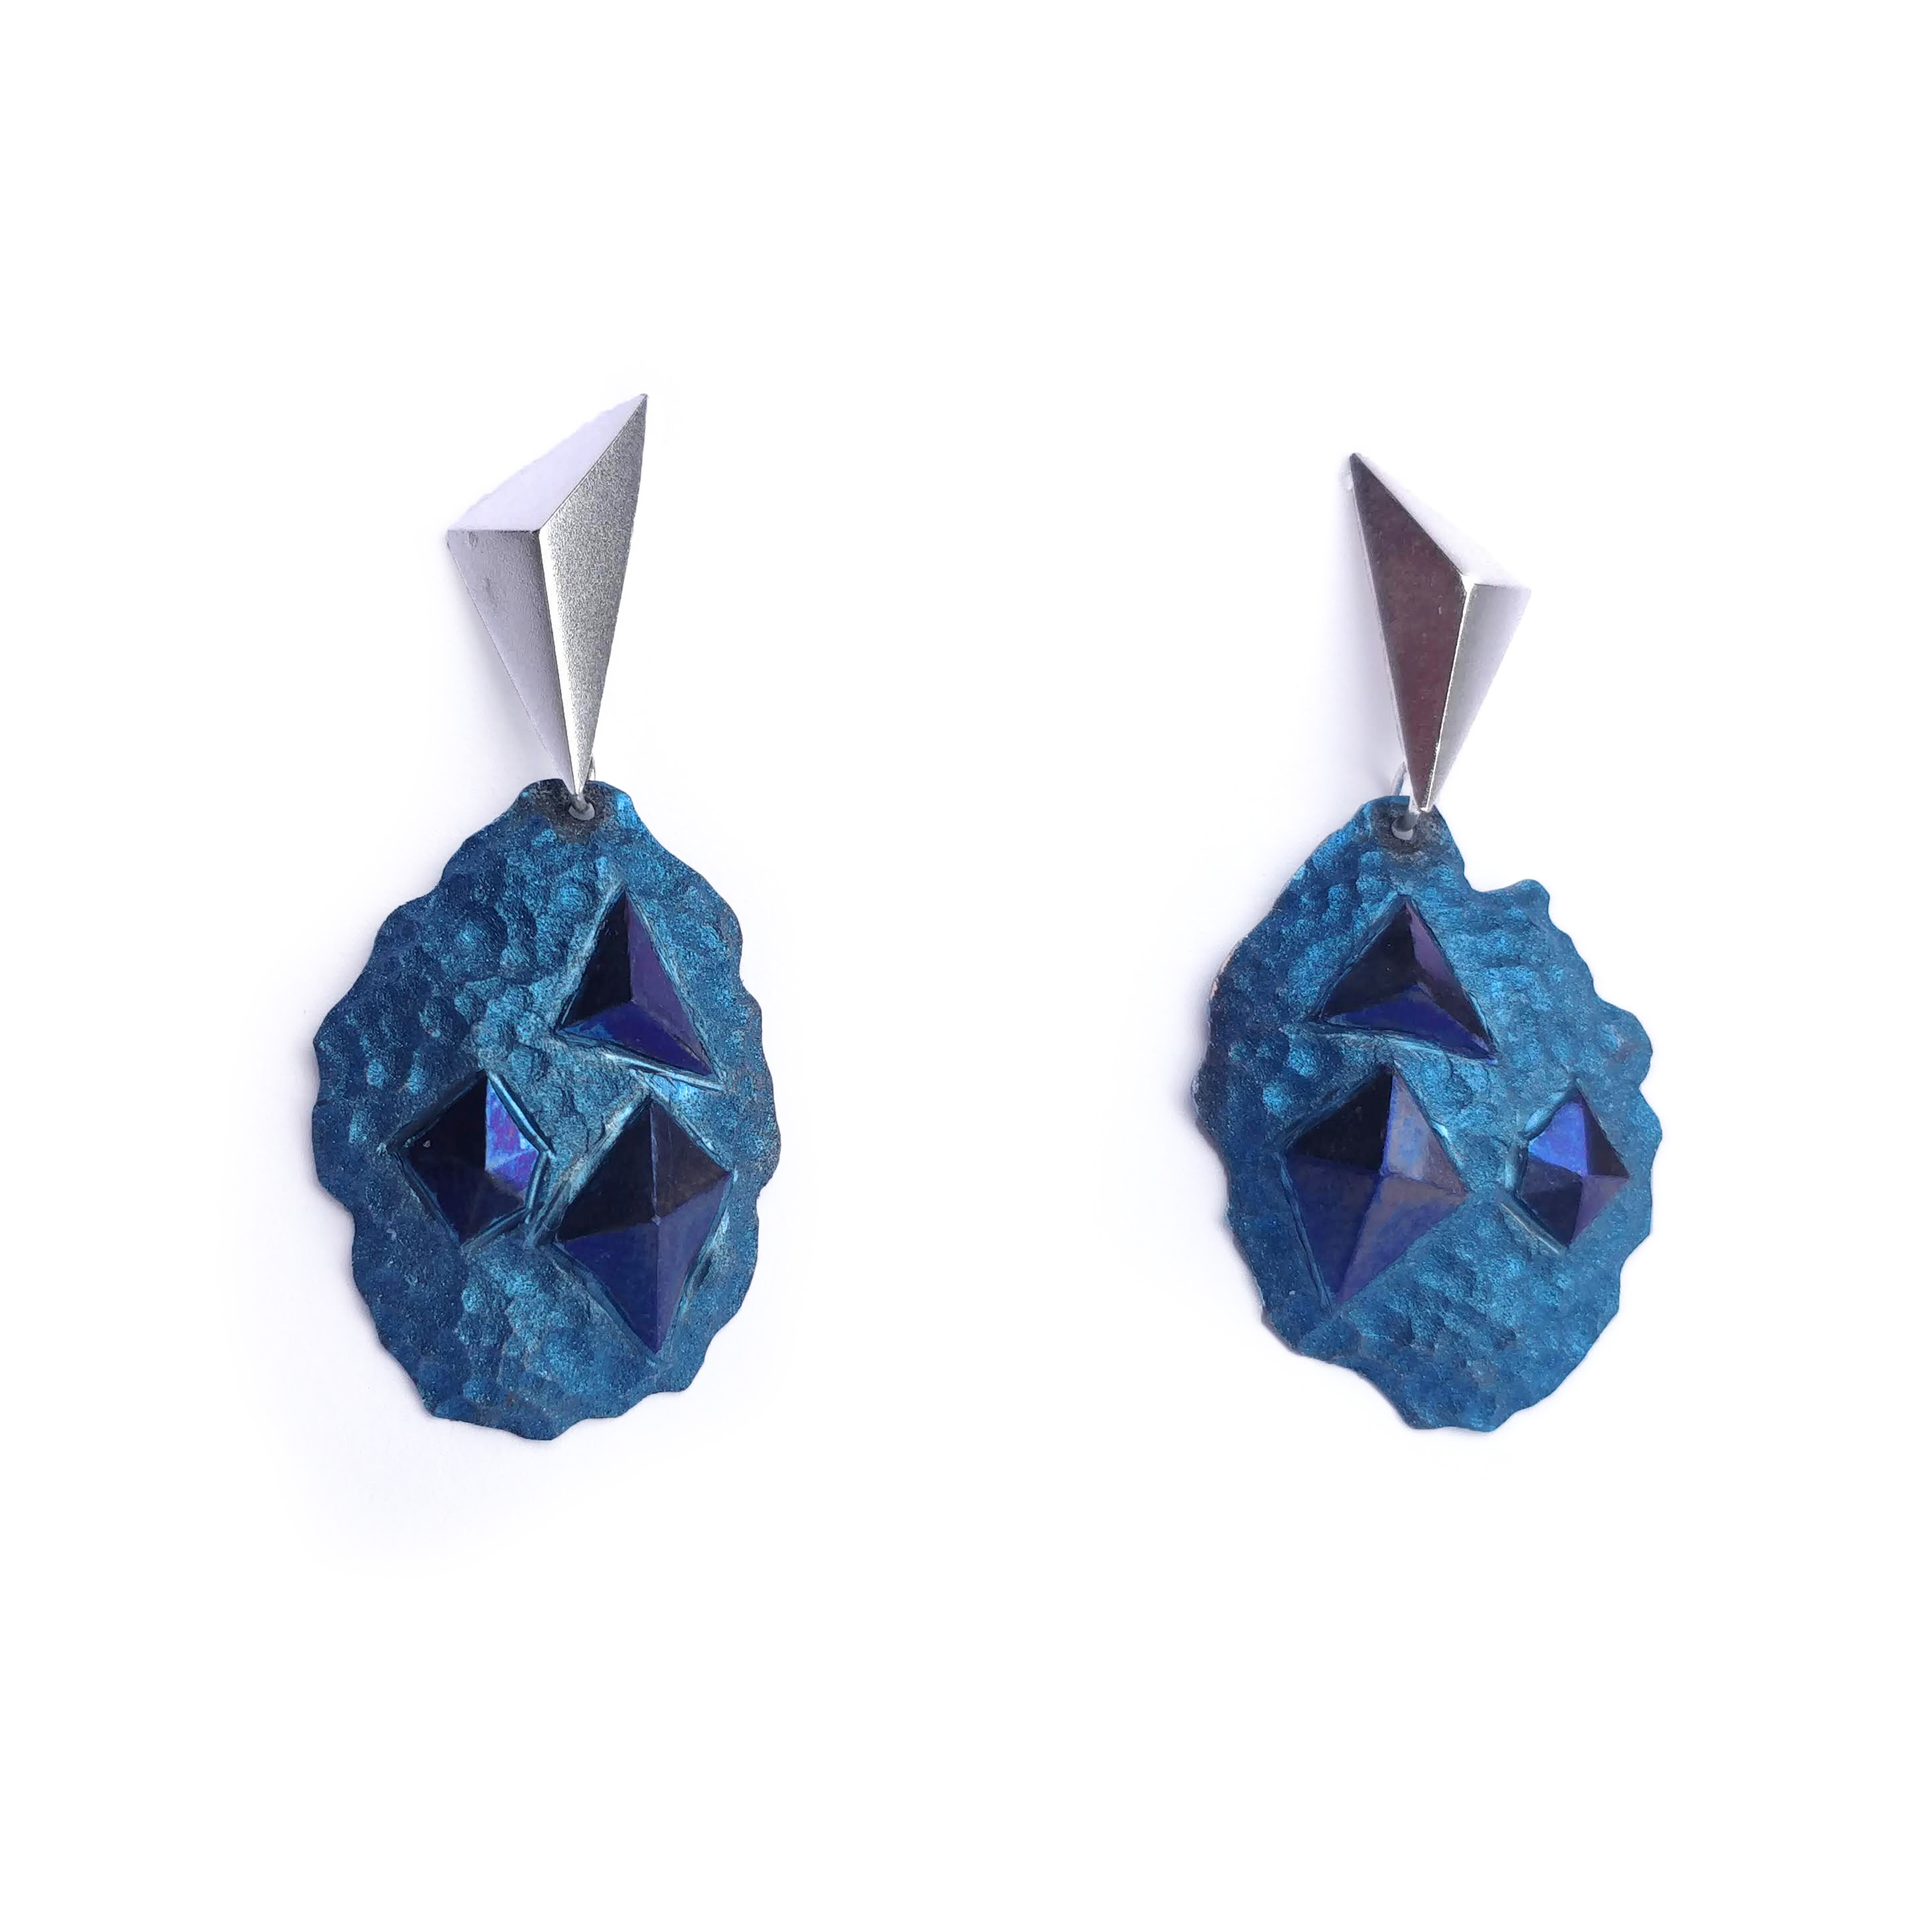 Alice Fry Blue niobium and silver rock earrings